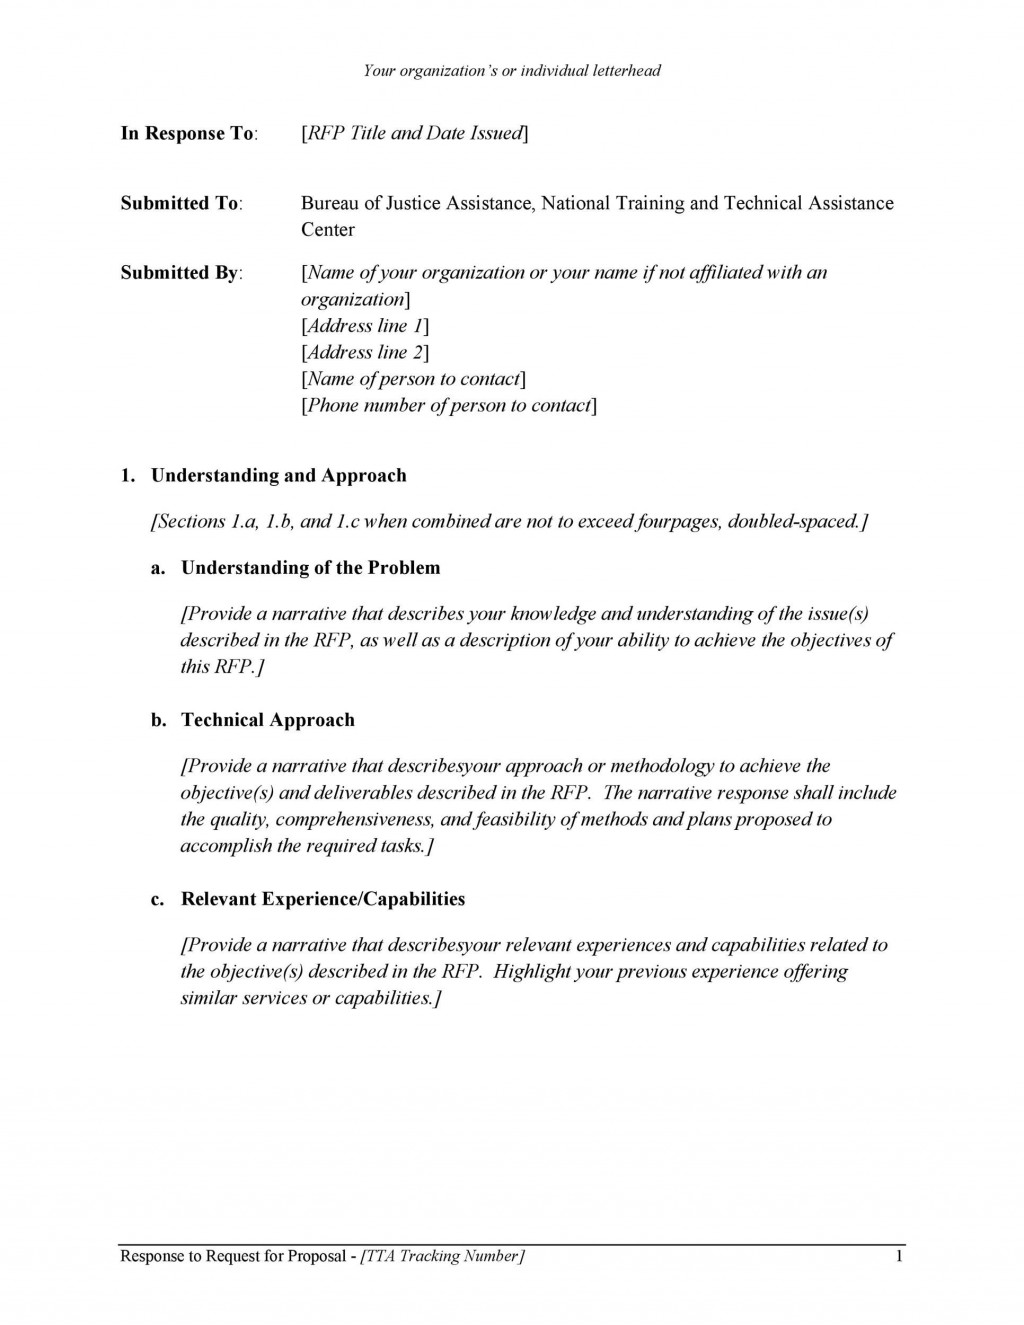 006 Amazing Request For Proposal Response Word Template Image Large